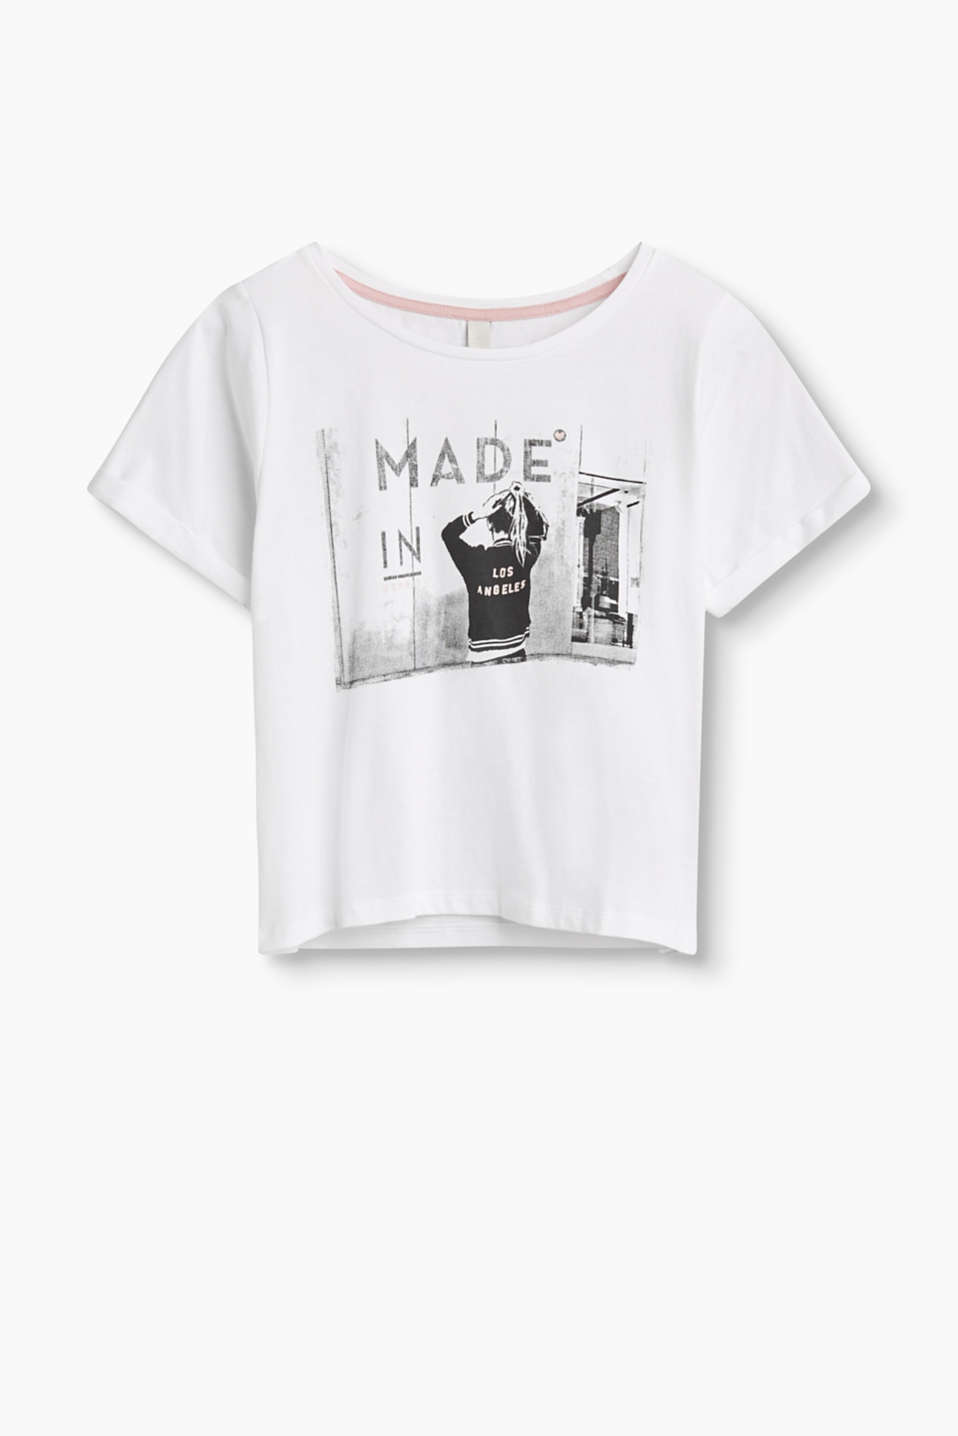 Made in Los Angeles - make a statement with the print on this jersey top made of pure cotton.